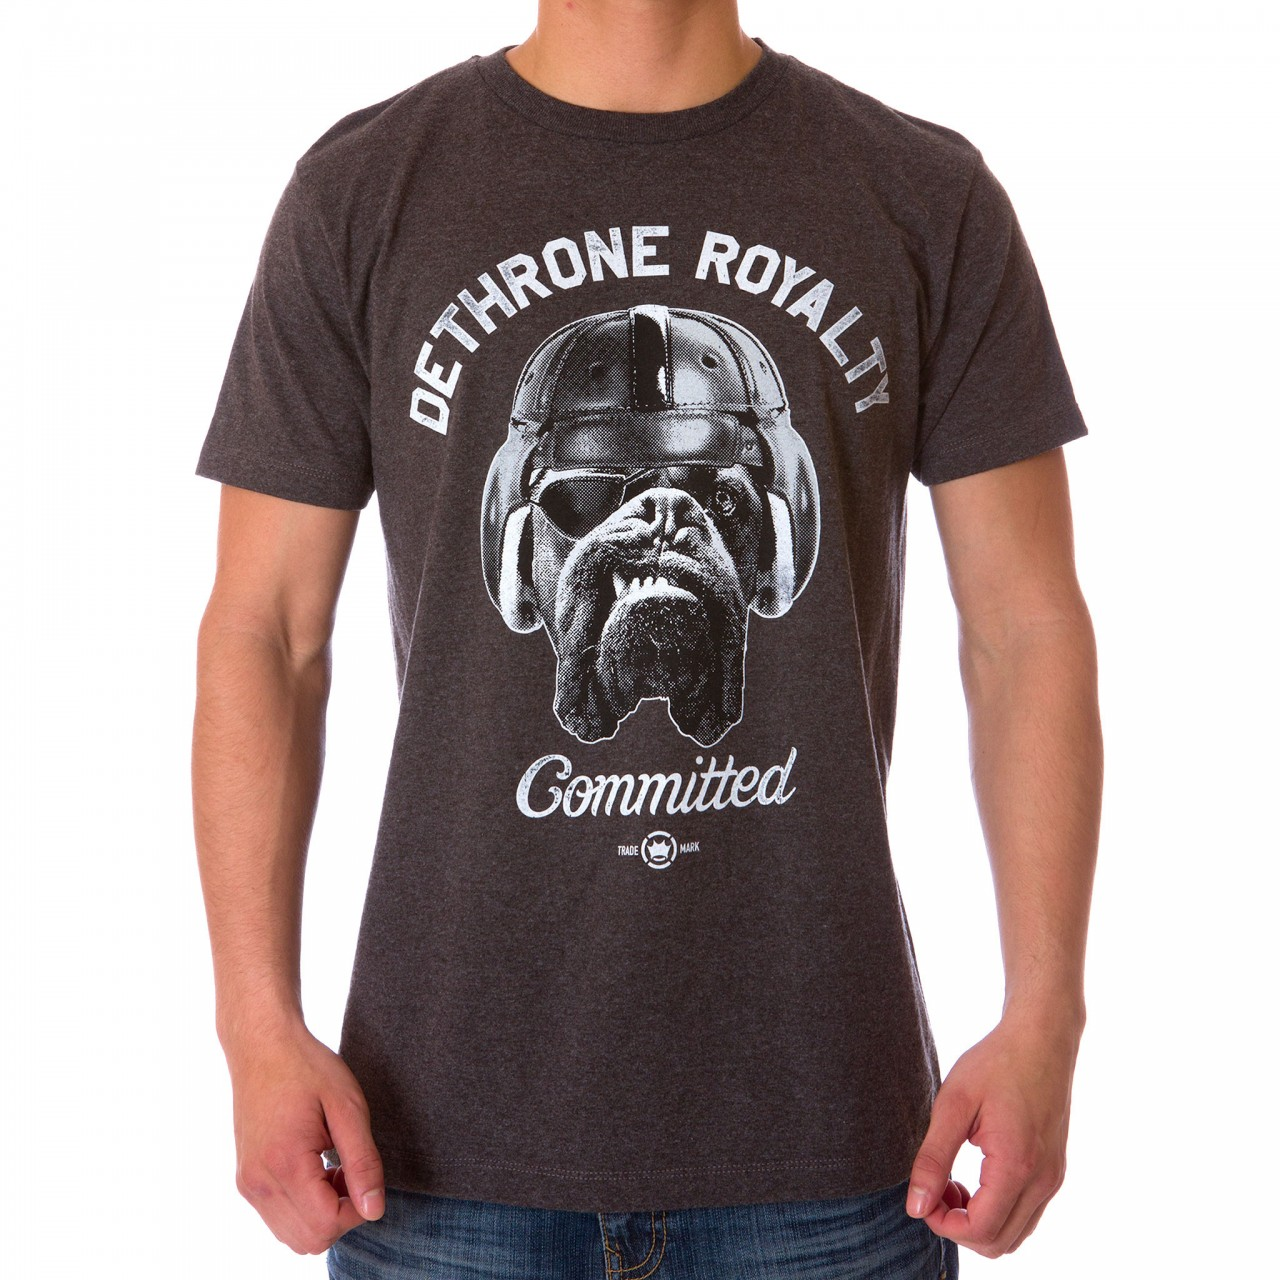 Dethrone Committed Dog tee - Charcoal